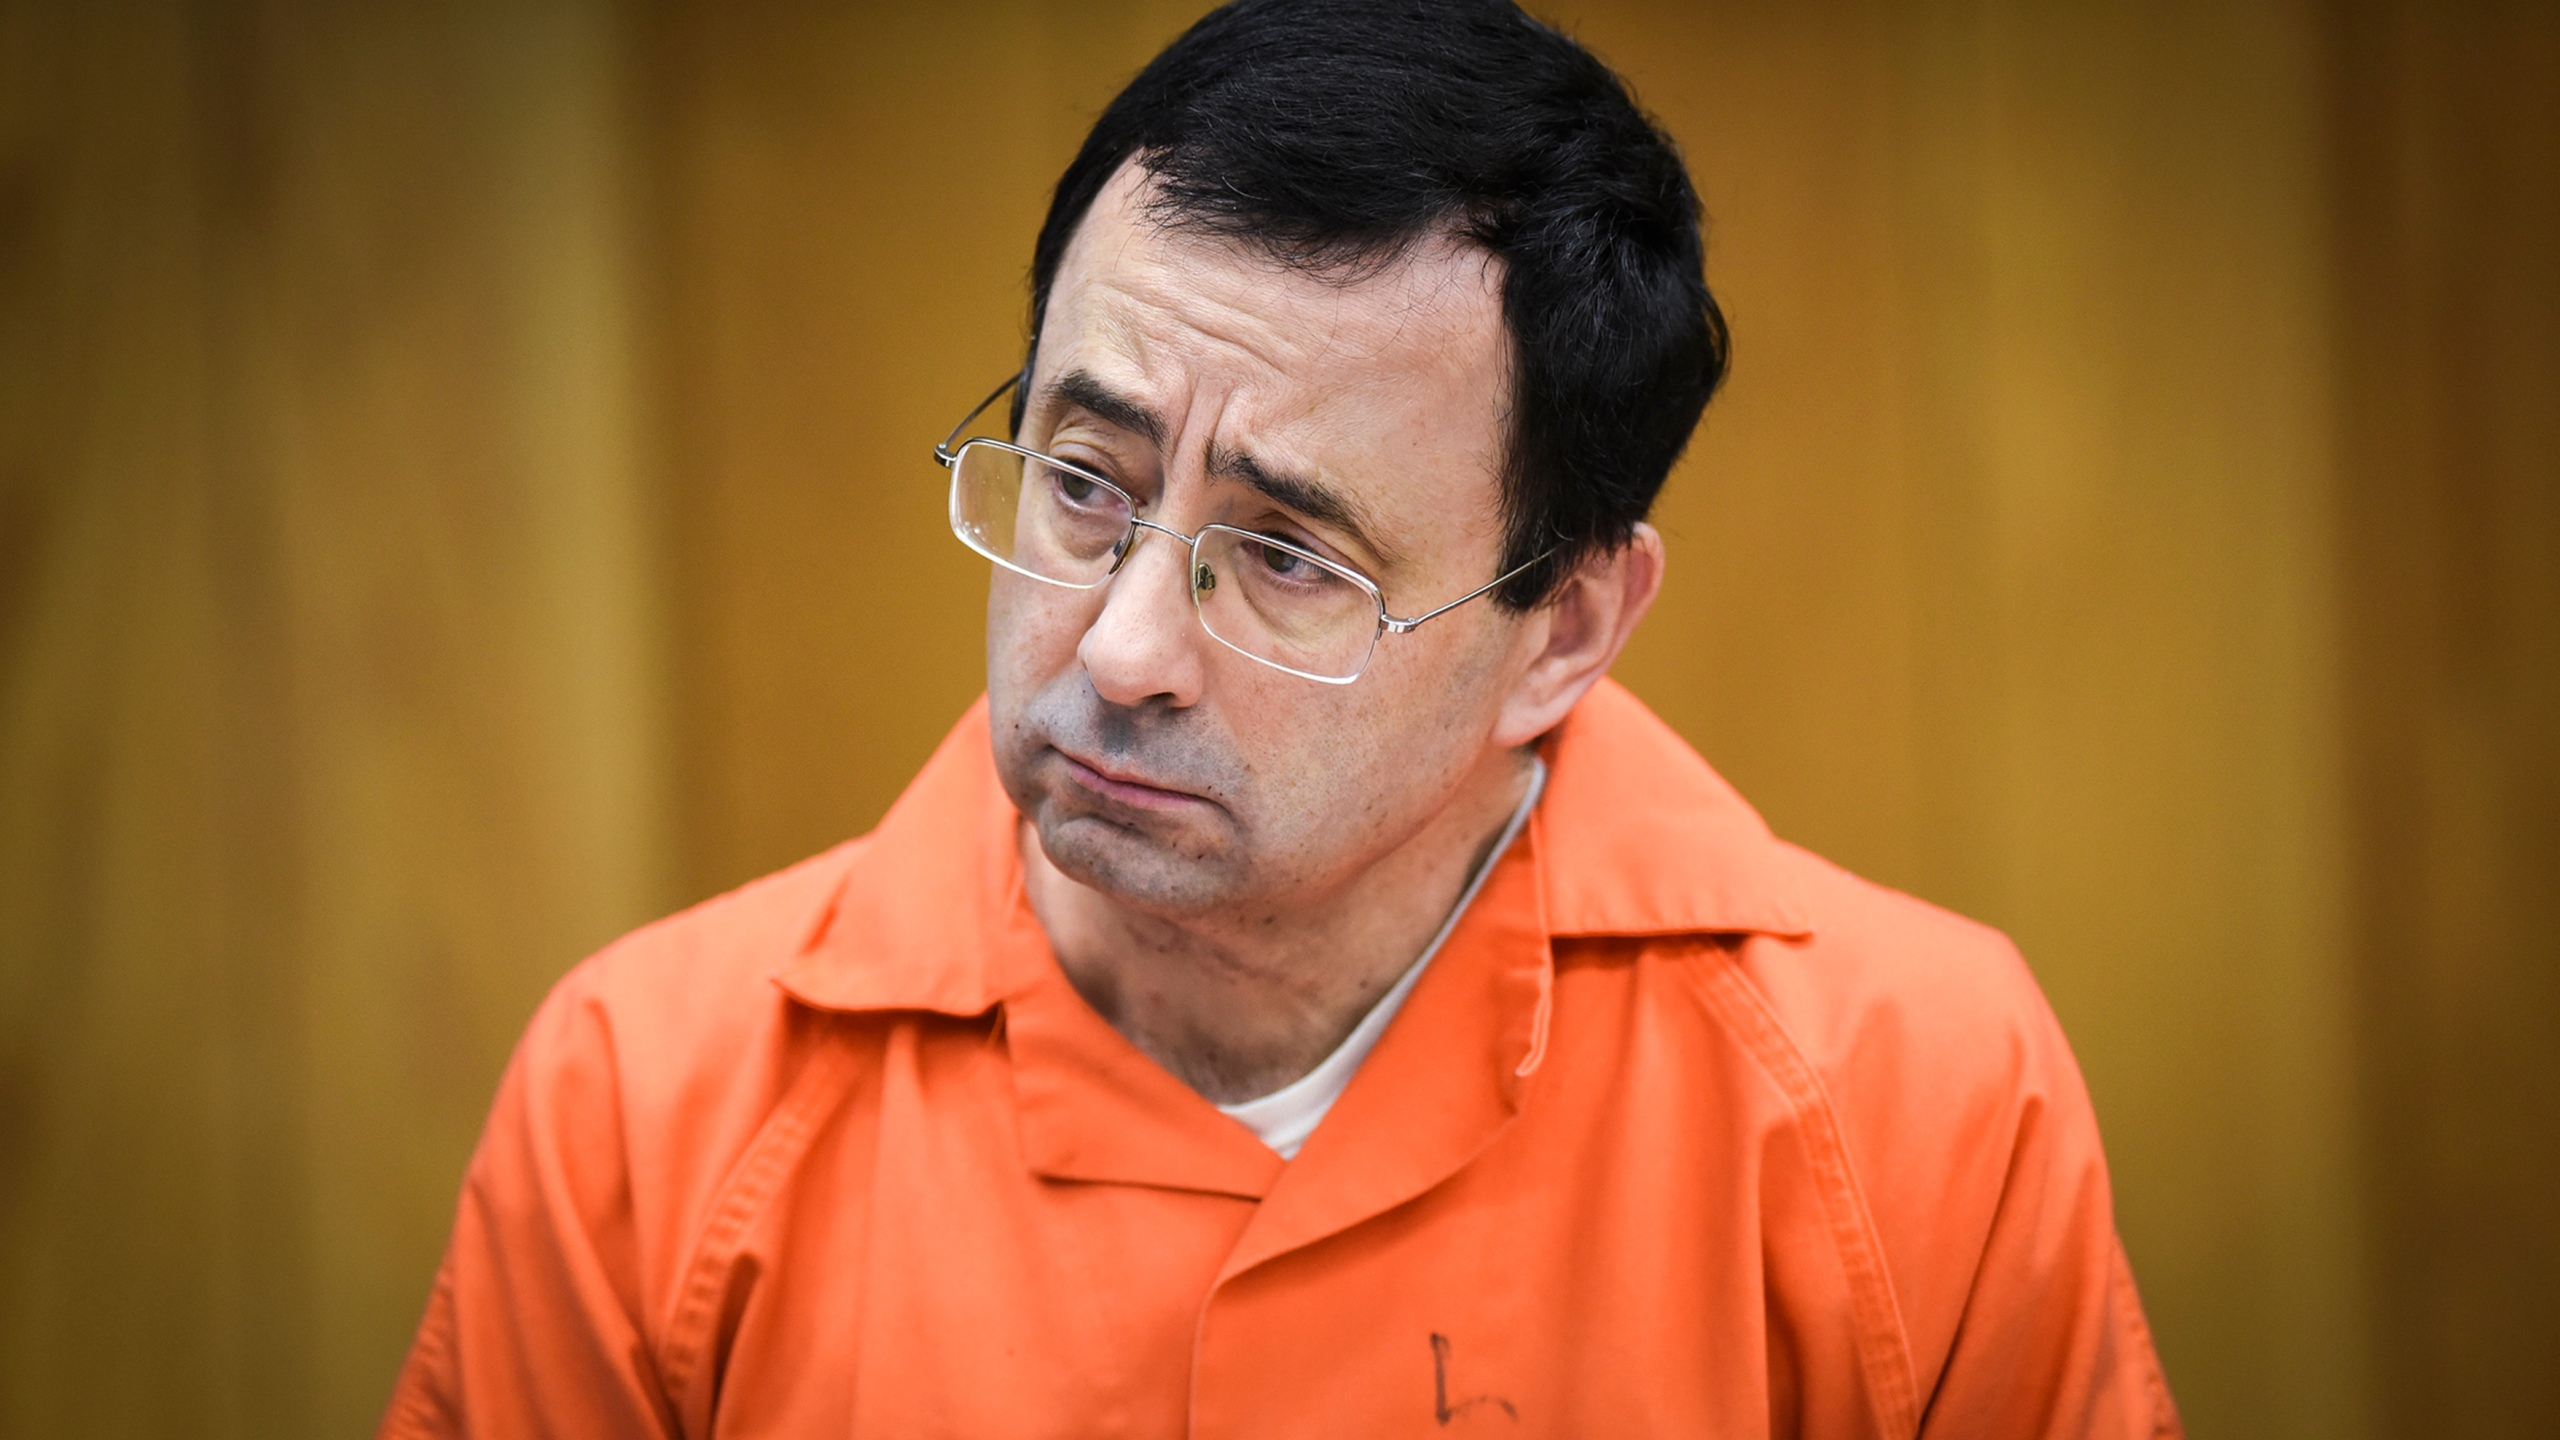 Nassar_Lawsuit_06936-159532.jpg86291466